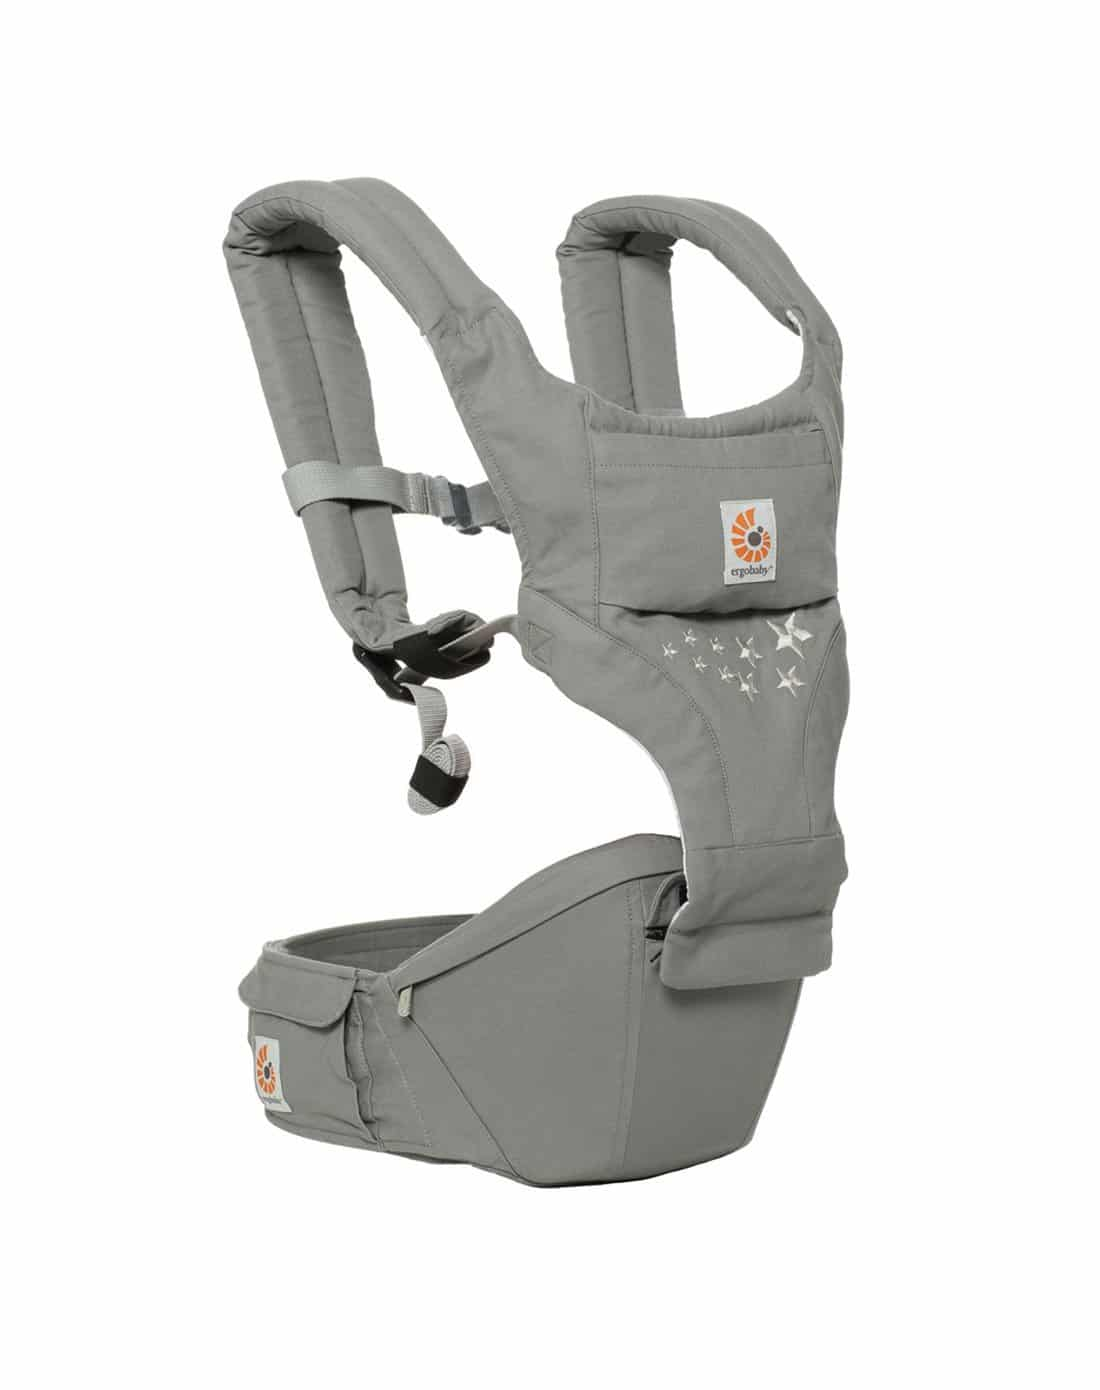 12813724cd2 Ergobaby - Hipseat 6 position Baby Carrier - Giggles Baby